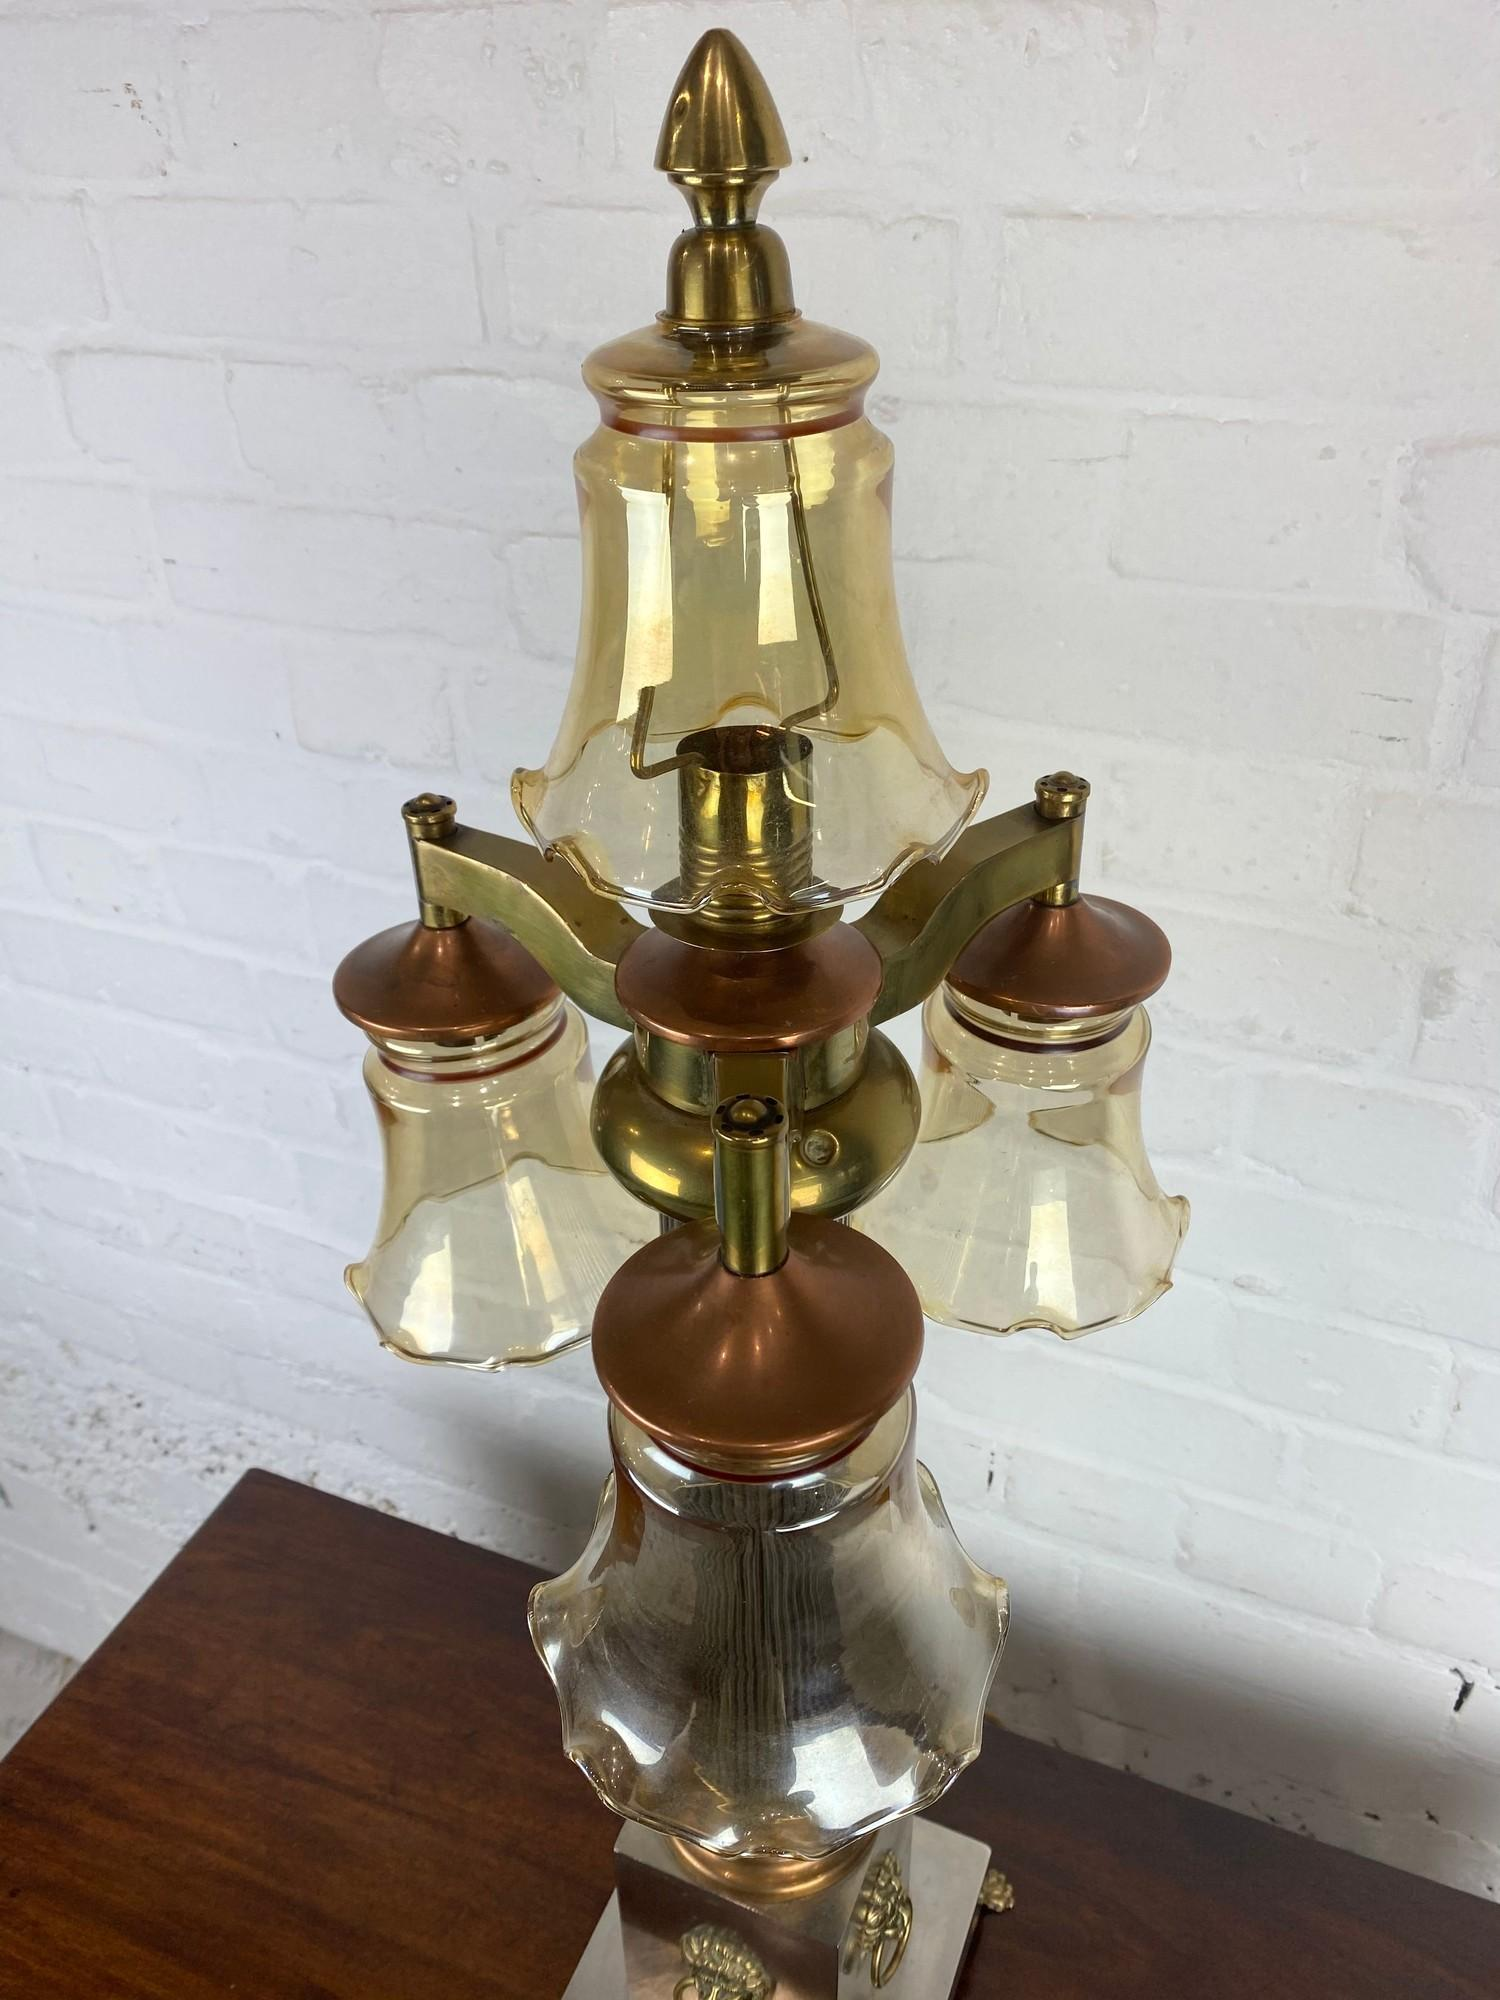 COLUMN HALL LAMP, early 20th century English silver plate, copper and brass four branch, with lion - Image 8 of 8